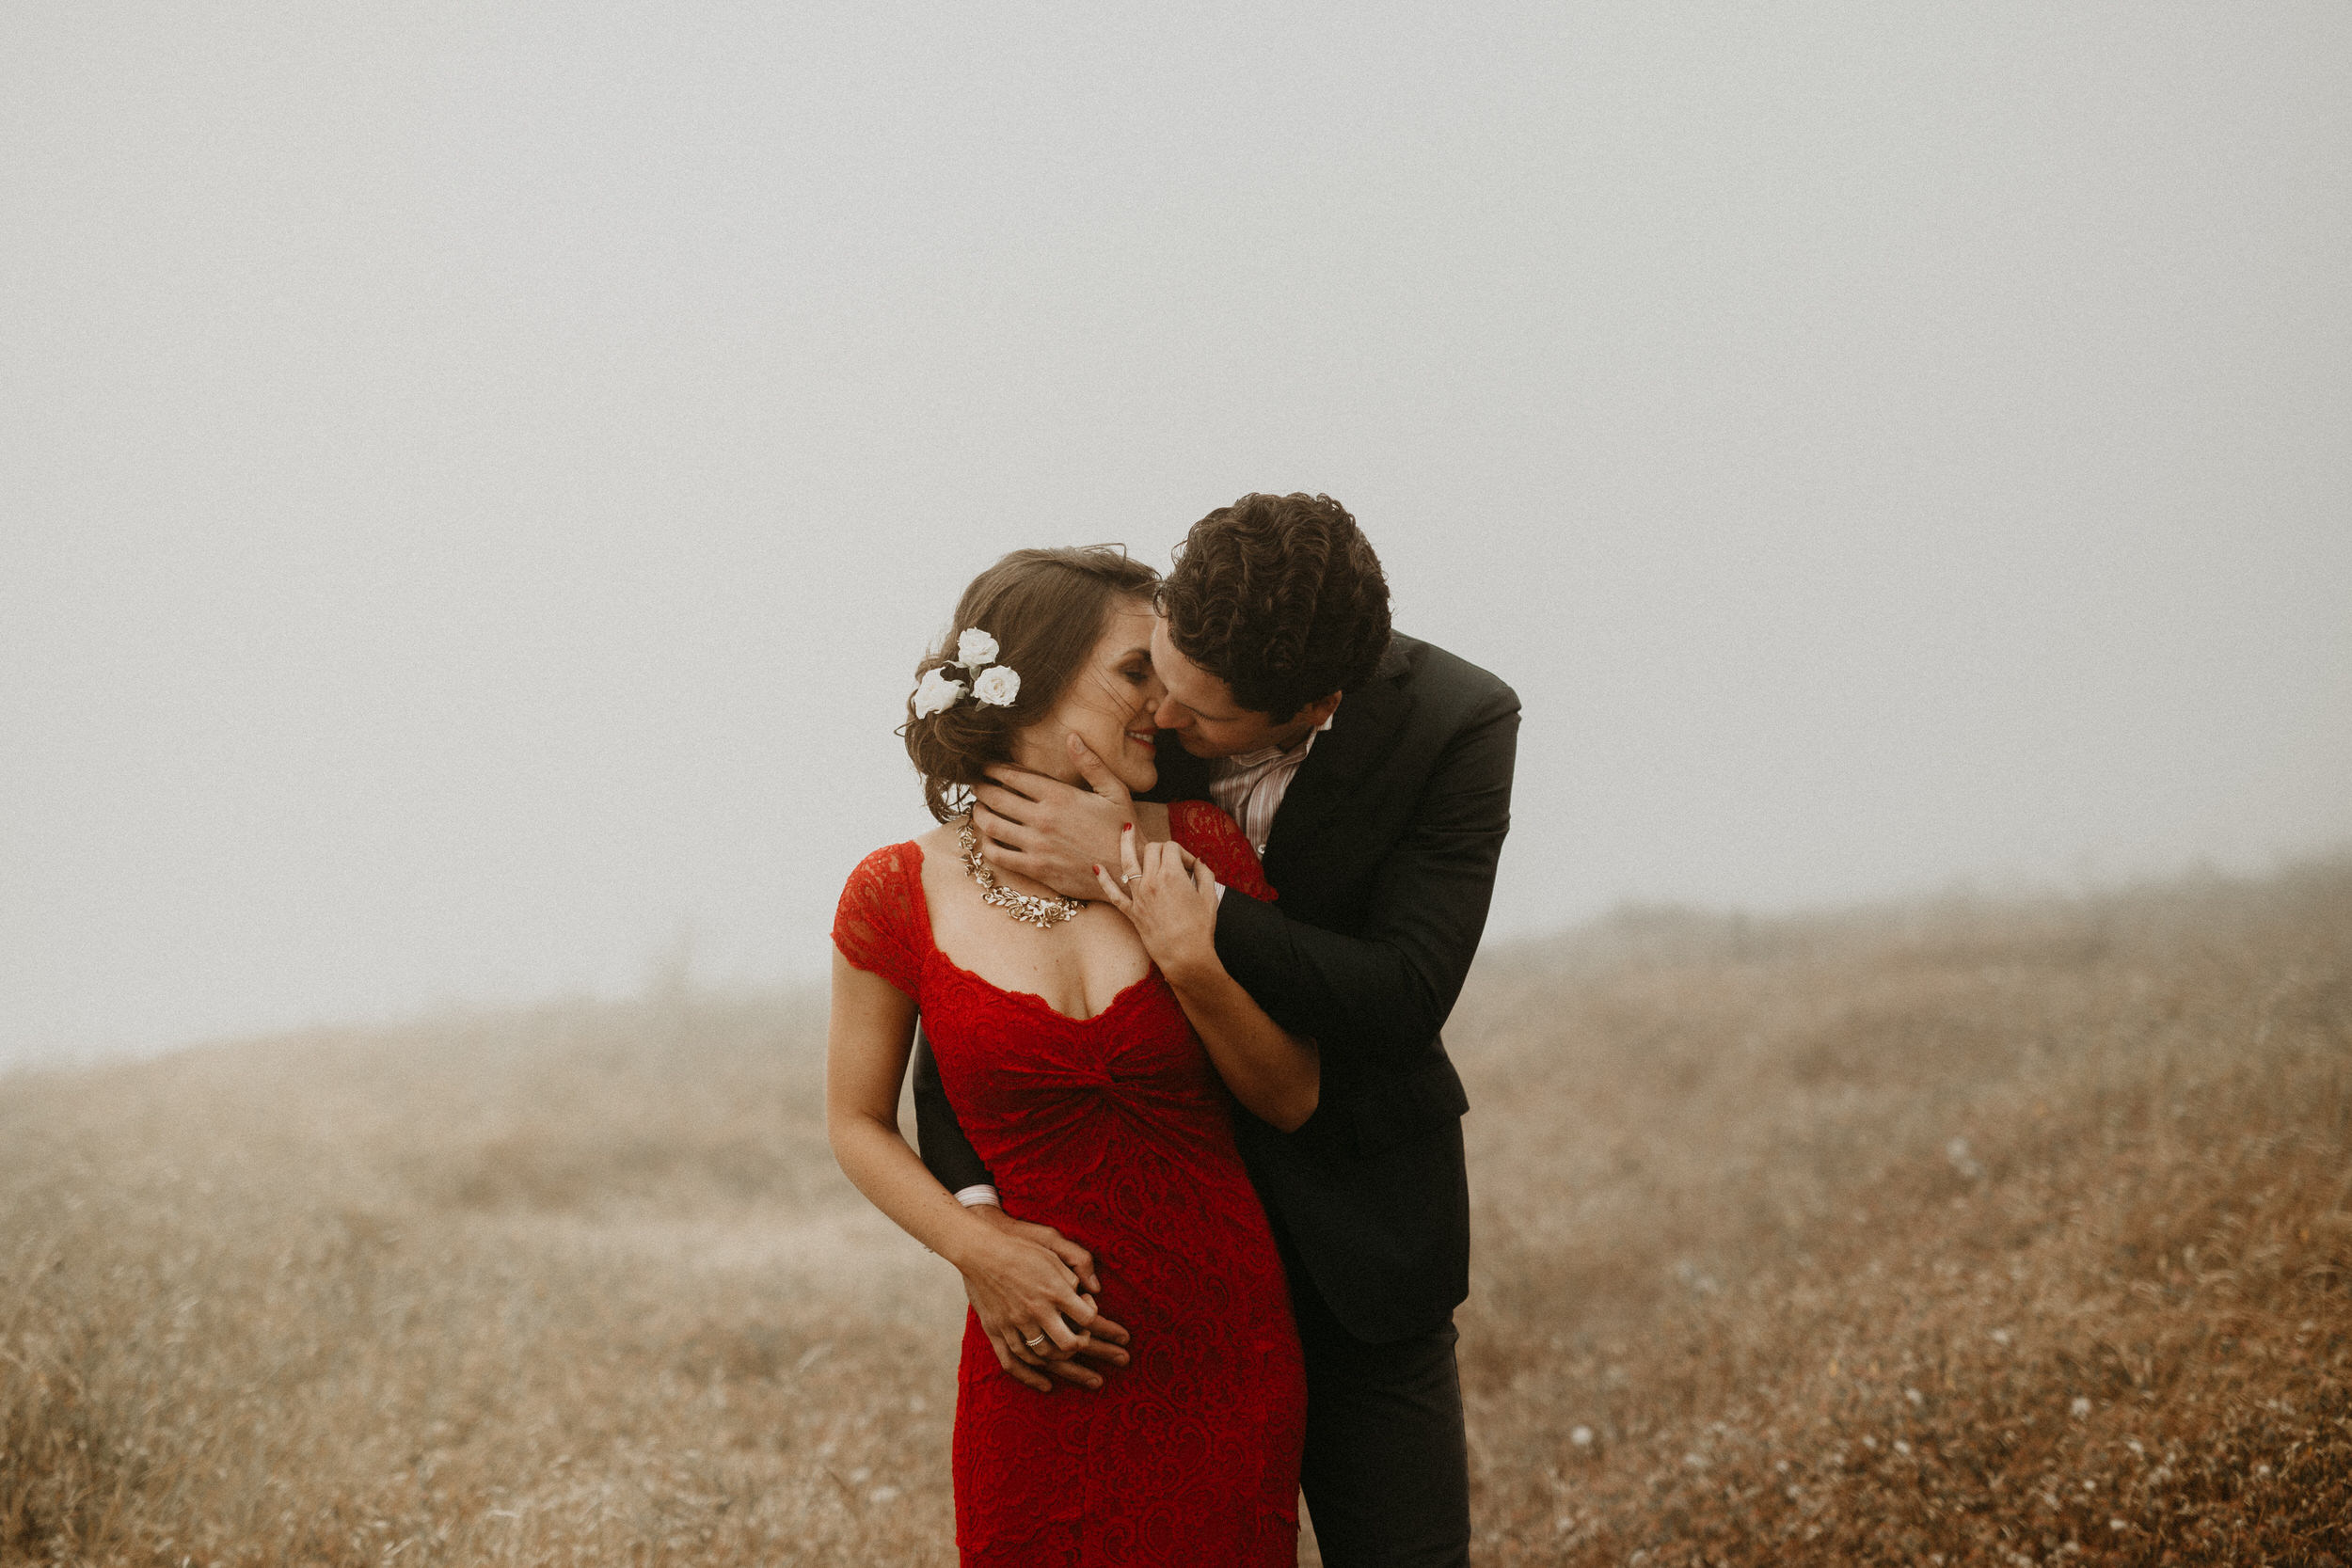 marin county, ca - evan + annick